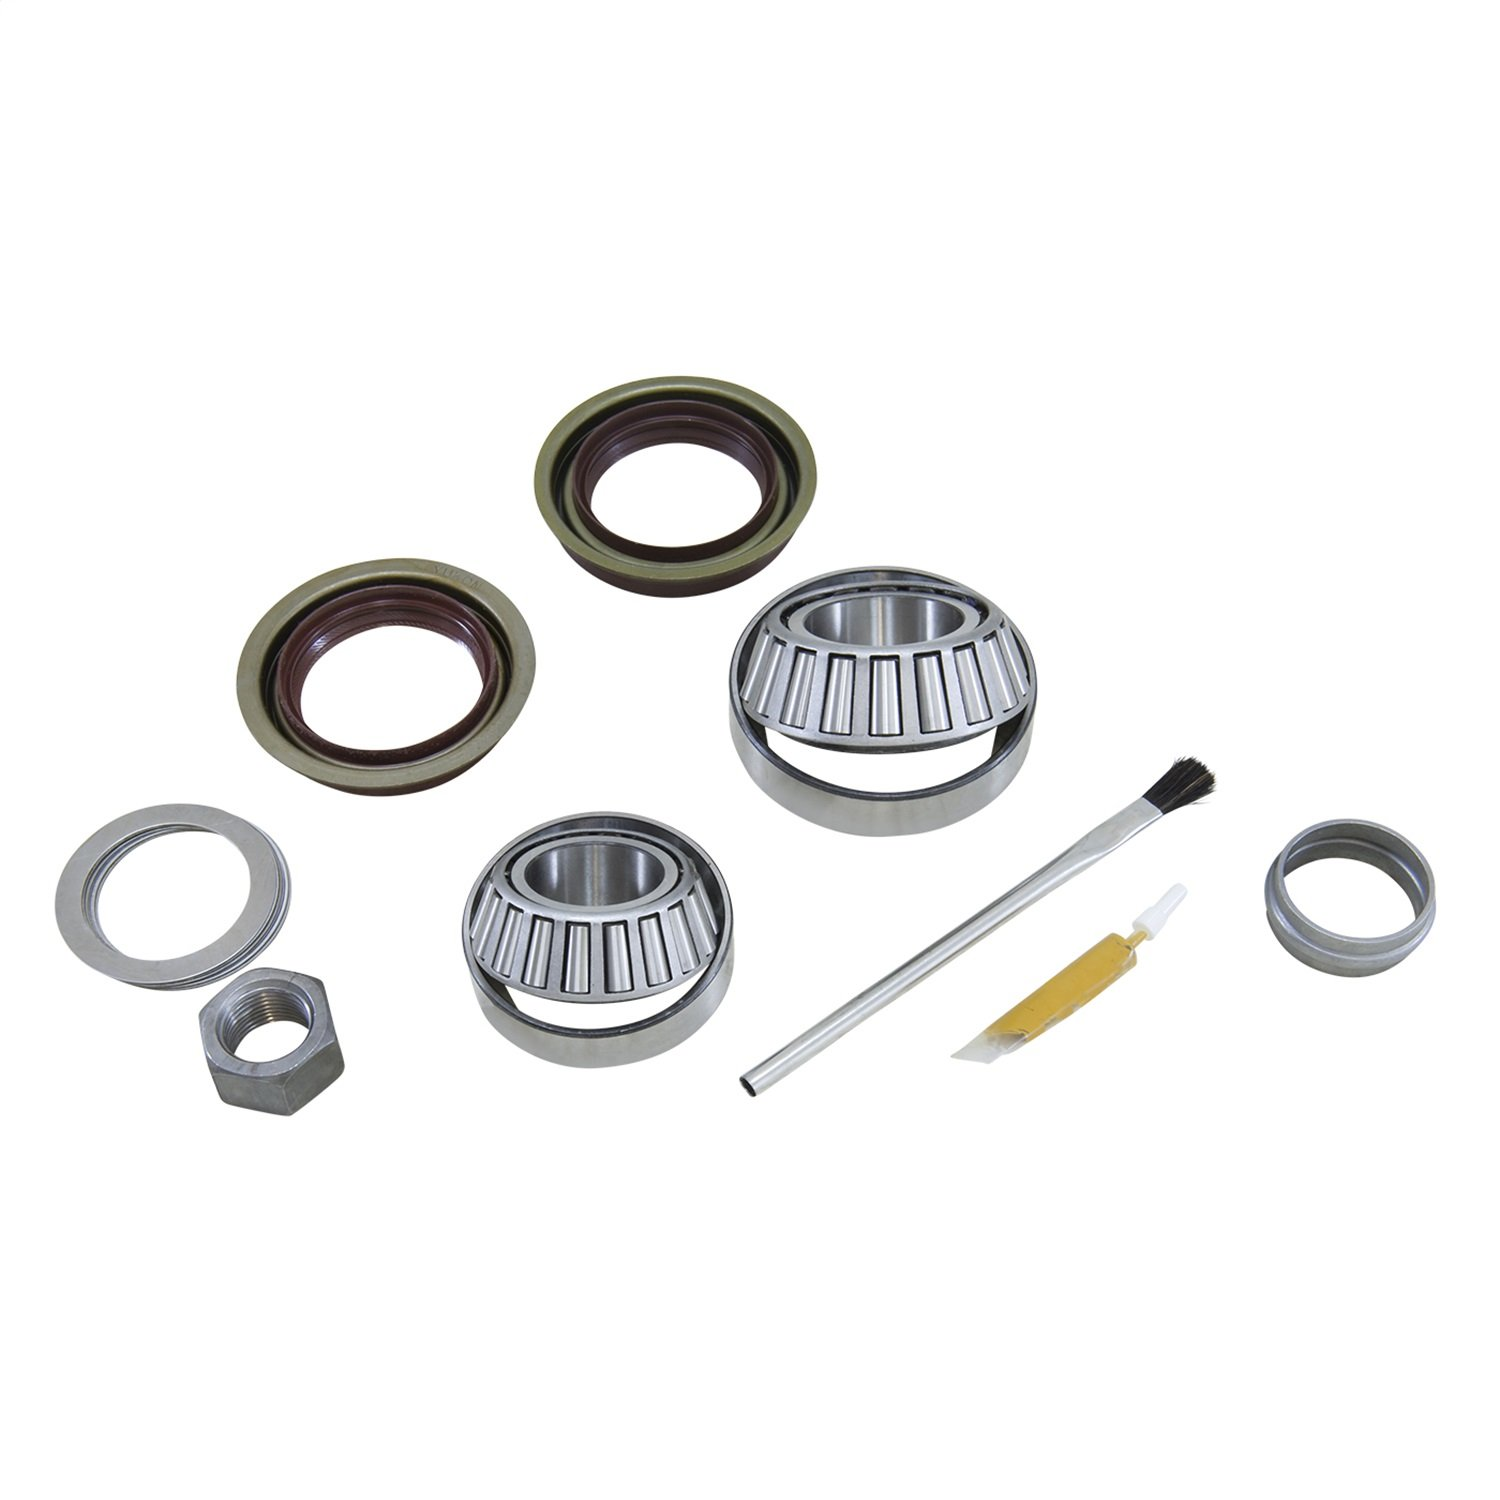 Yukon Gear & Axle (PK GM8.6-A) Pinion Installation Kit for GM 8.6 Differential